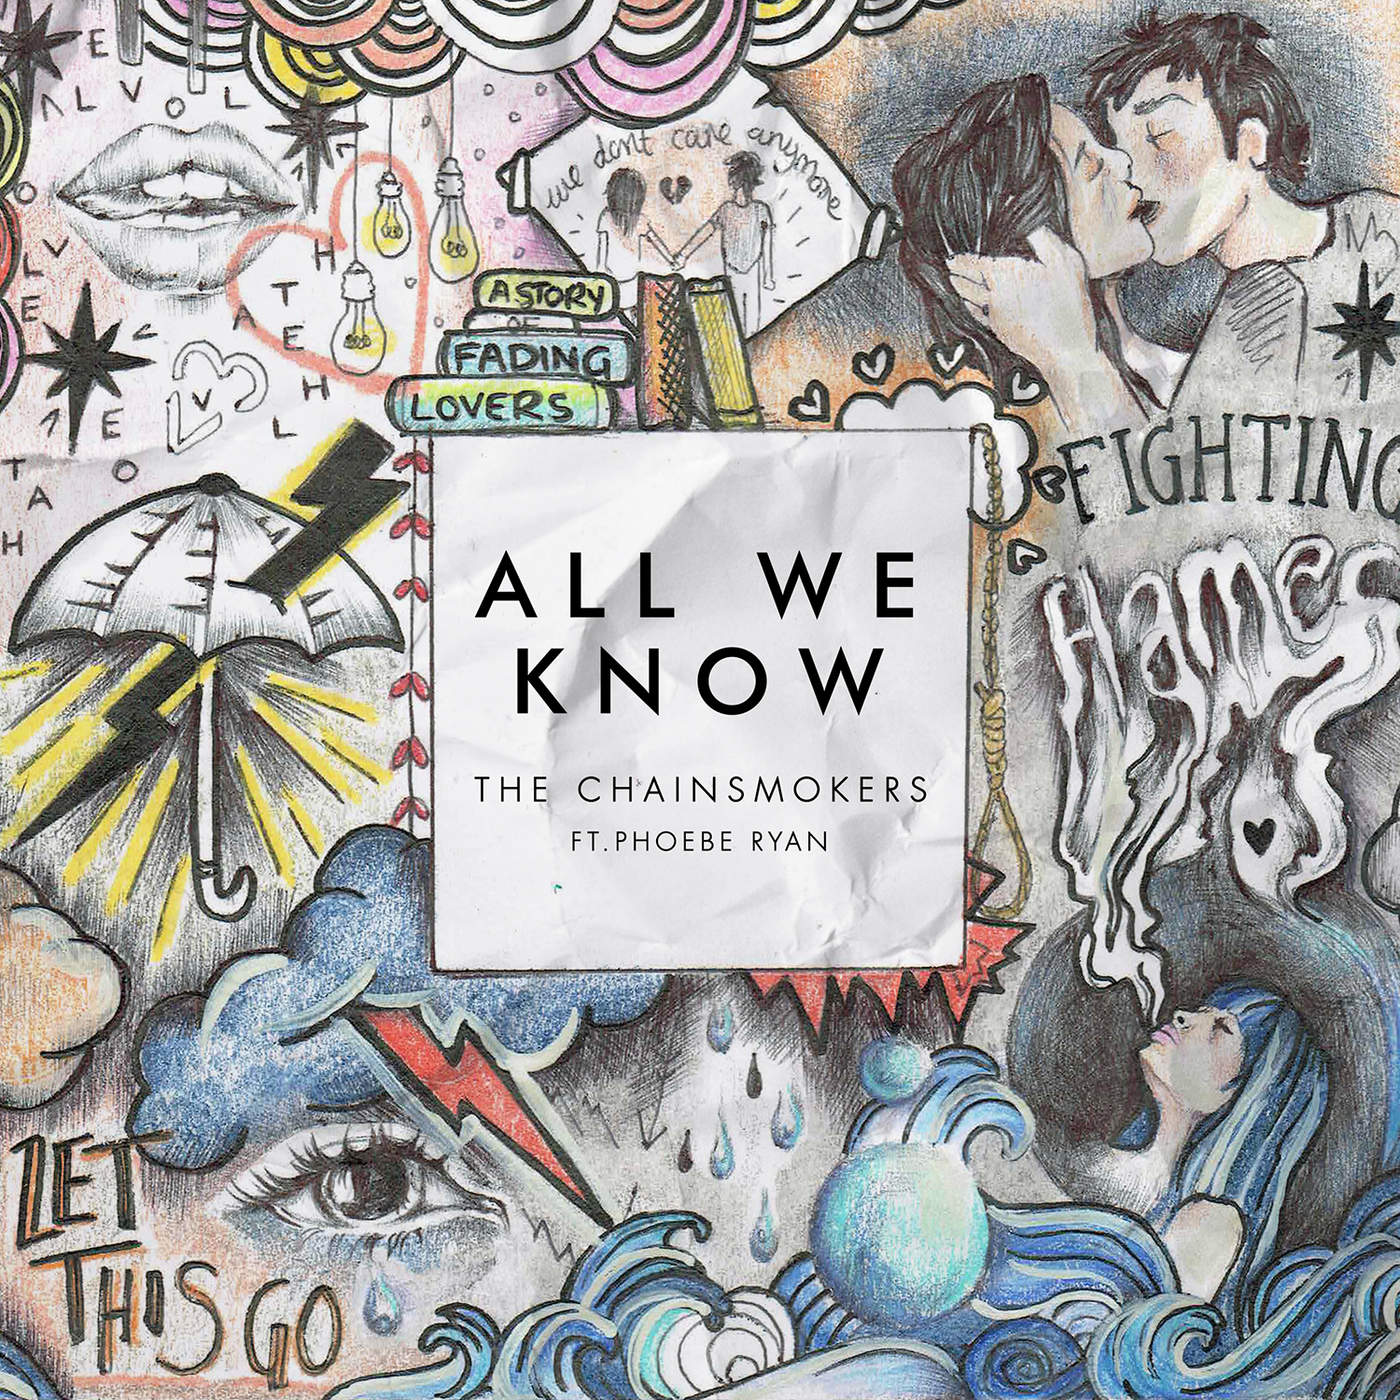 All We Know – The Chainsmokers ft. Phoebe Ryan